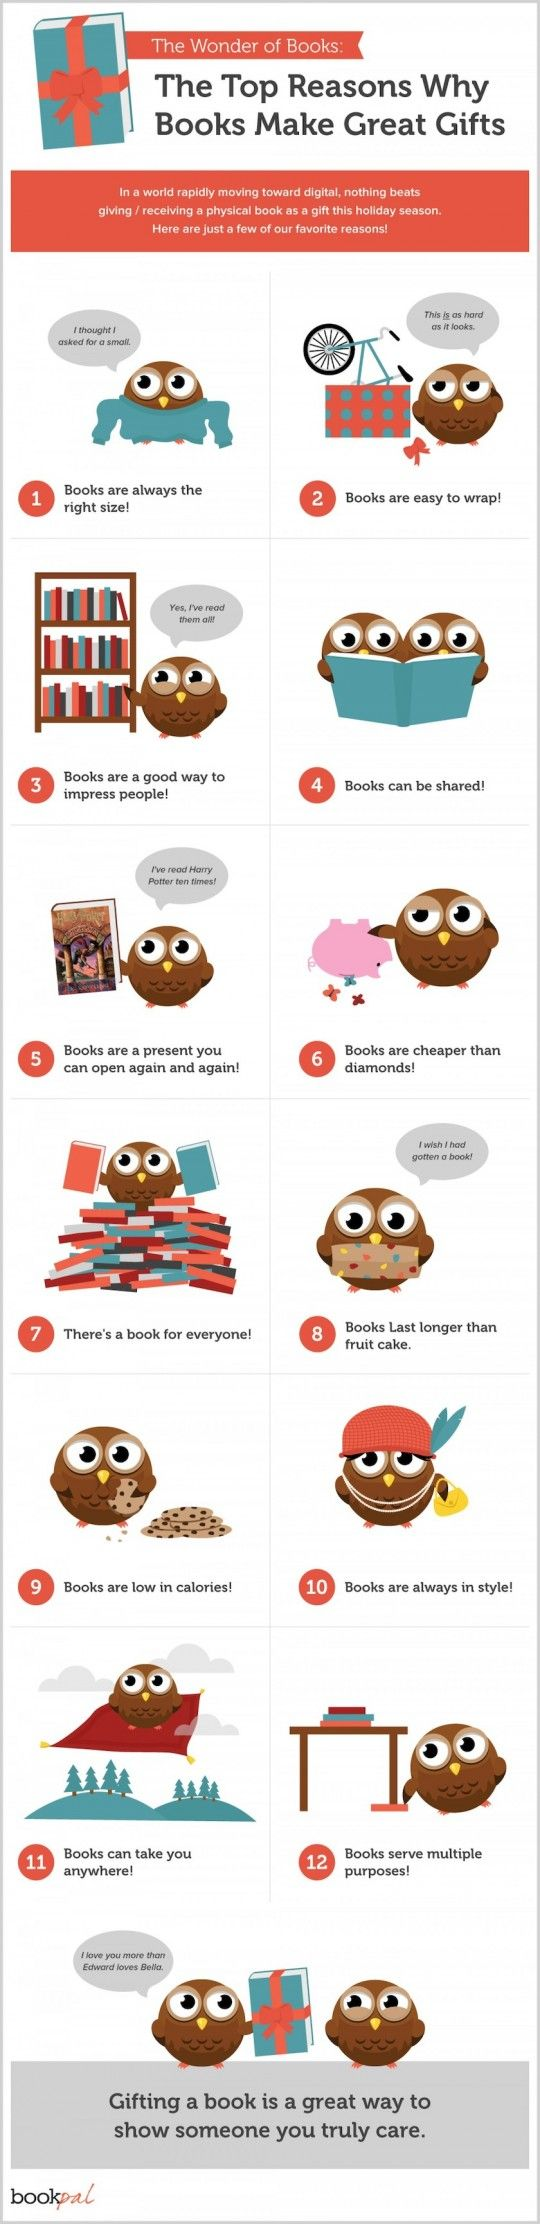 12 reasons why books make great gifts (infographic)  --  Designed by WPromote  for BookPal, a site that promotes literacy and education, the infographic comes handy when you get lost in gift ideas. -- Gifting a book is never too obvious, too boring or too unimportant. No matter whether for Mother's Day, Christmas, or Valentine's Day, the book is always a way to show someone you truly care.